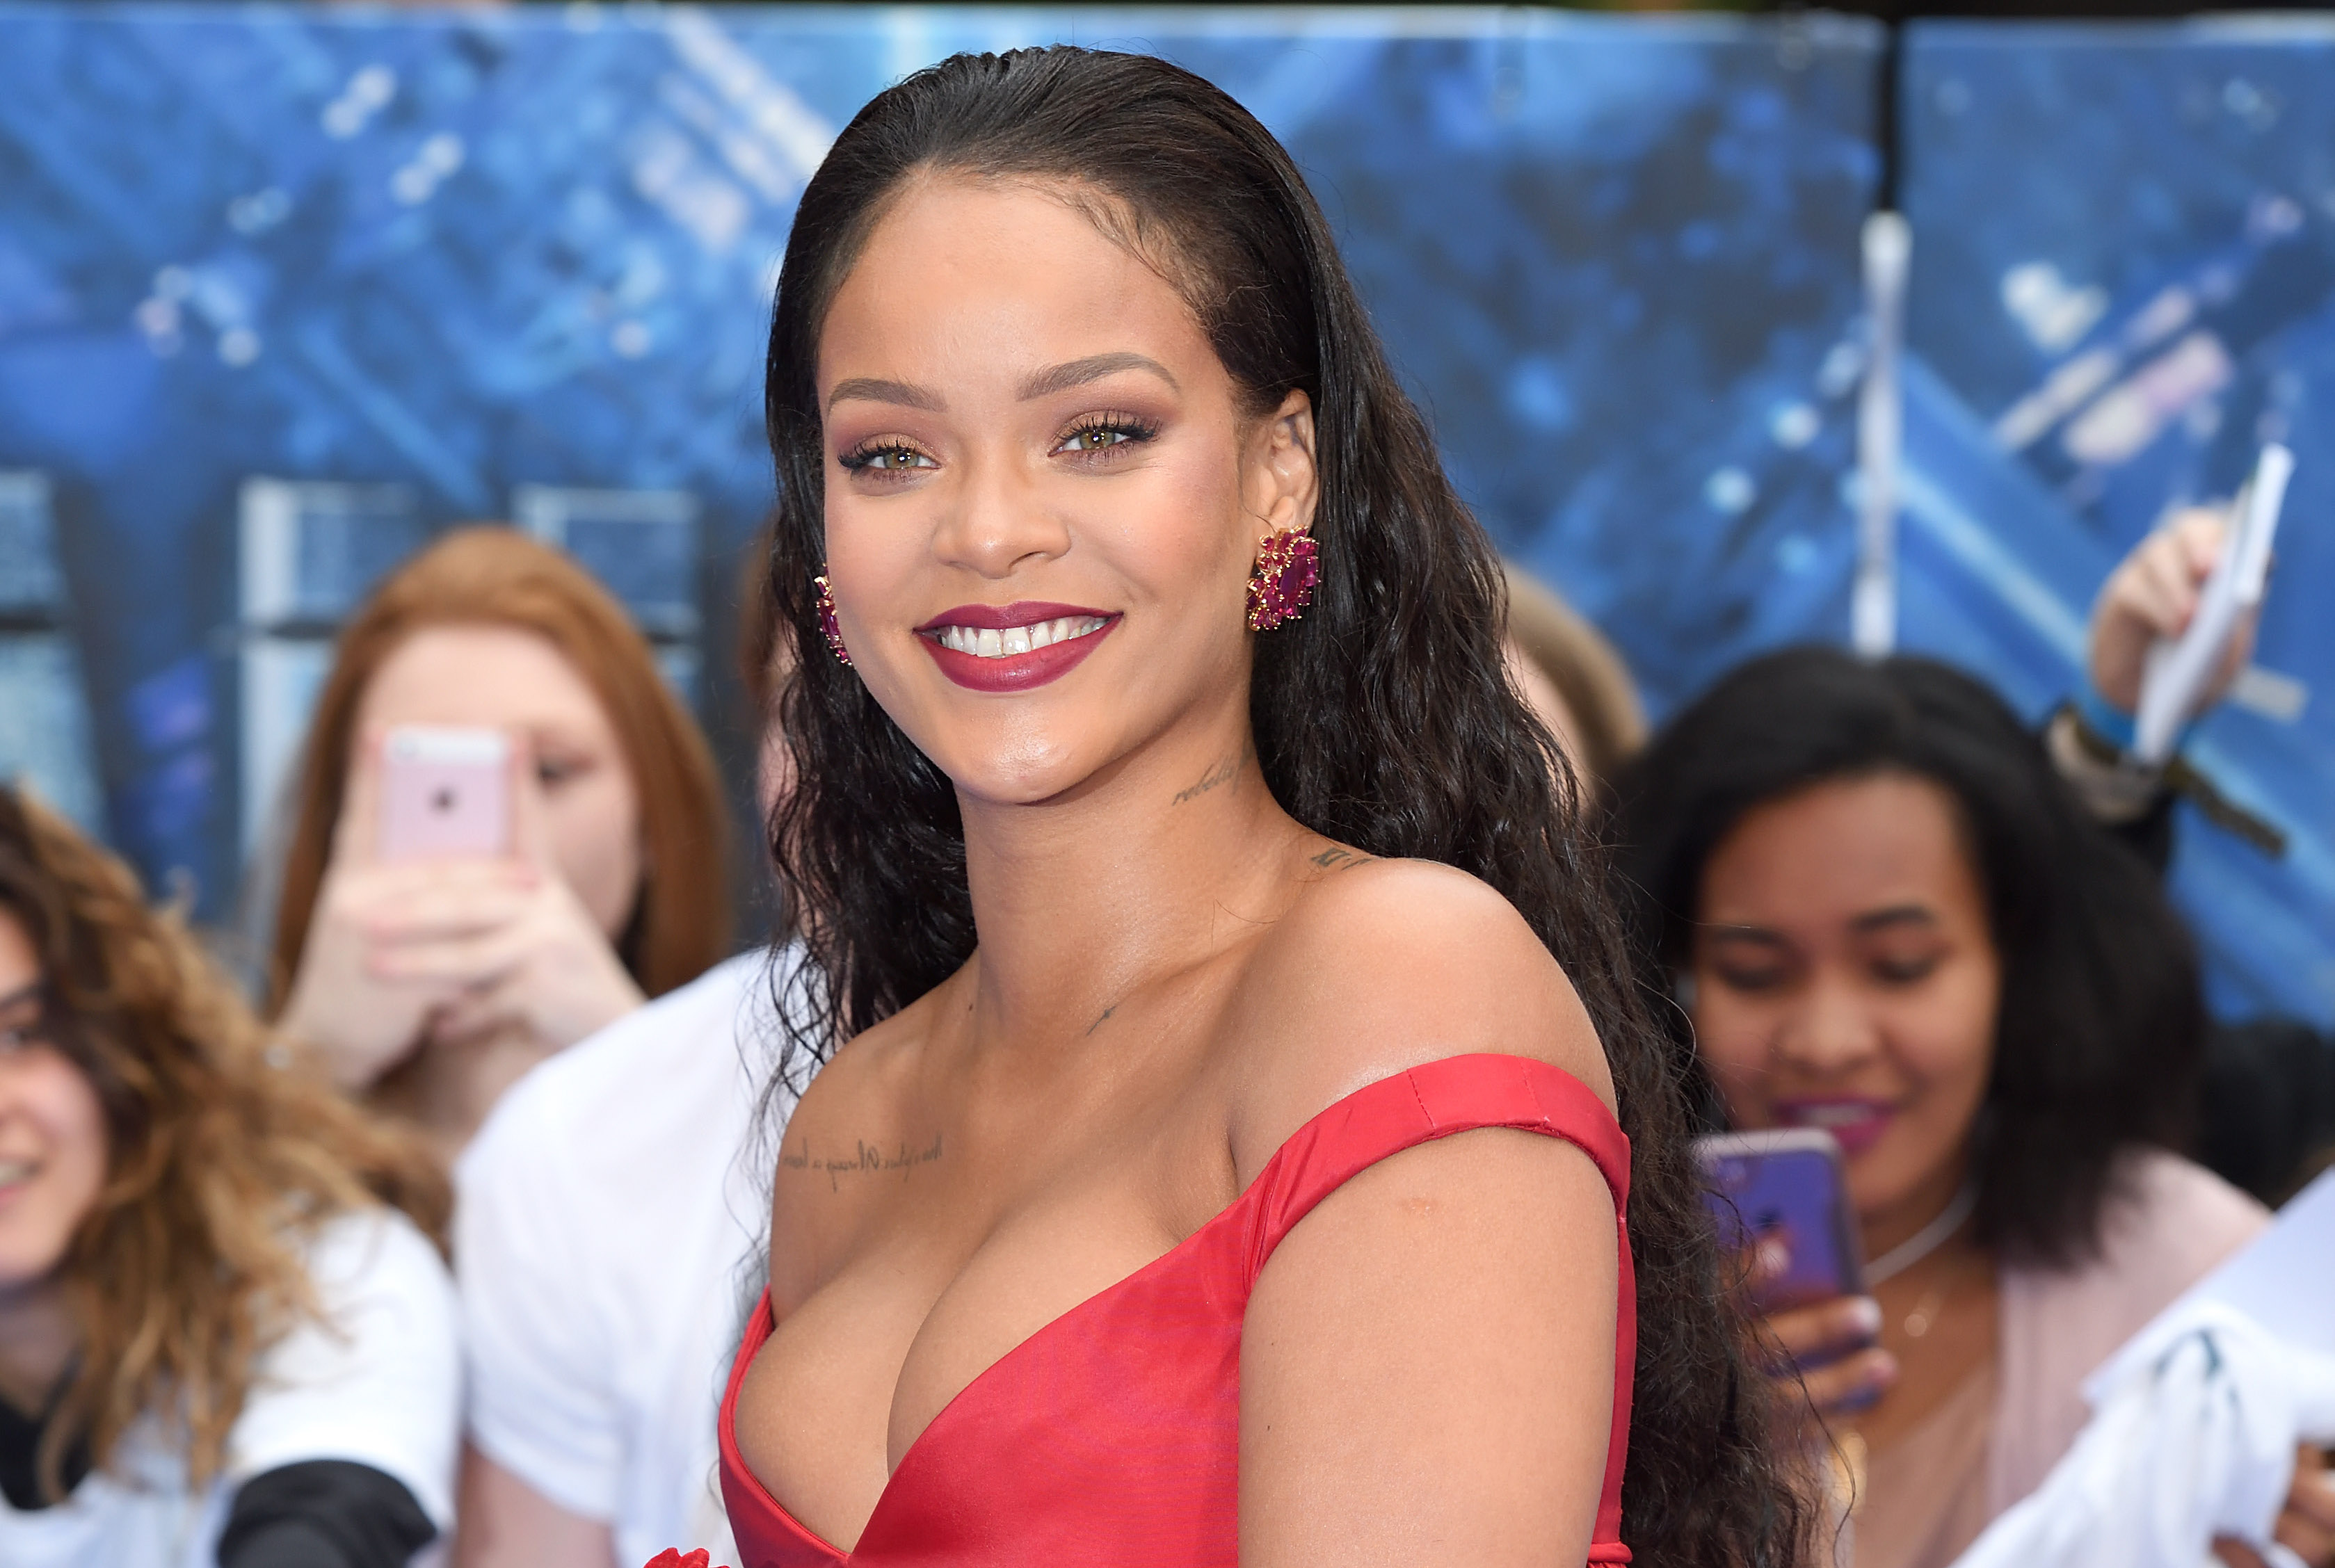 You can win a chance to attend Rihanna's Diamond Ball for just $1